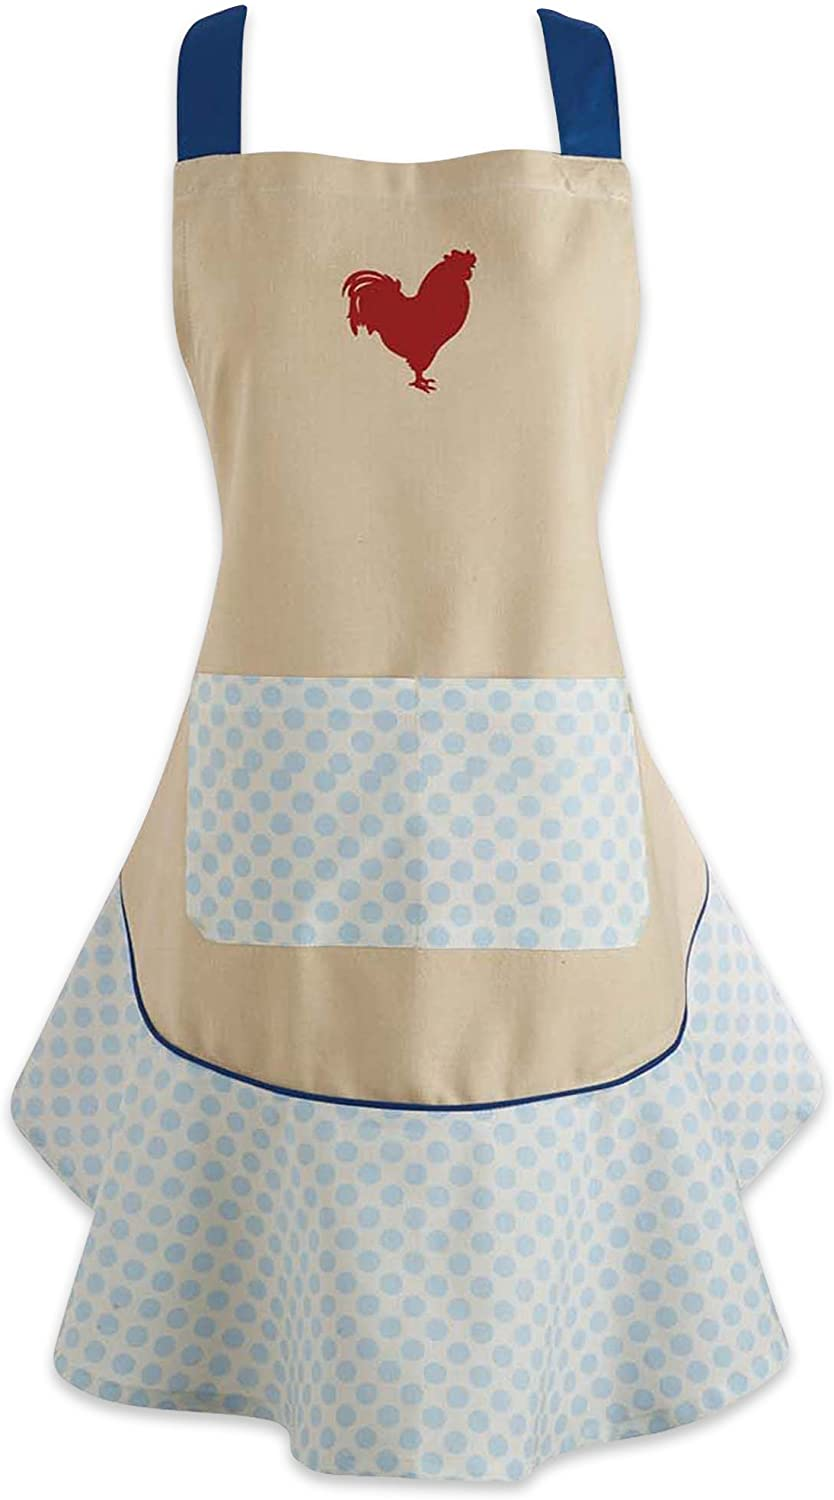 DII CAMZ35784 Cotton Women Kitchen free Apron and L Dealing full price reduction Extra Pocket with